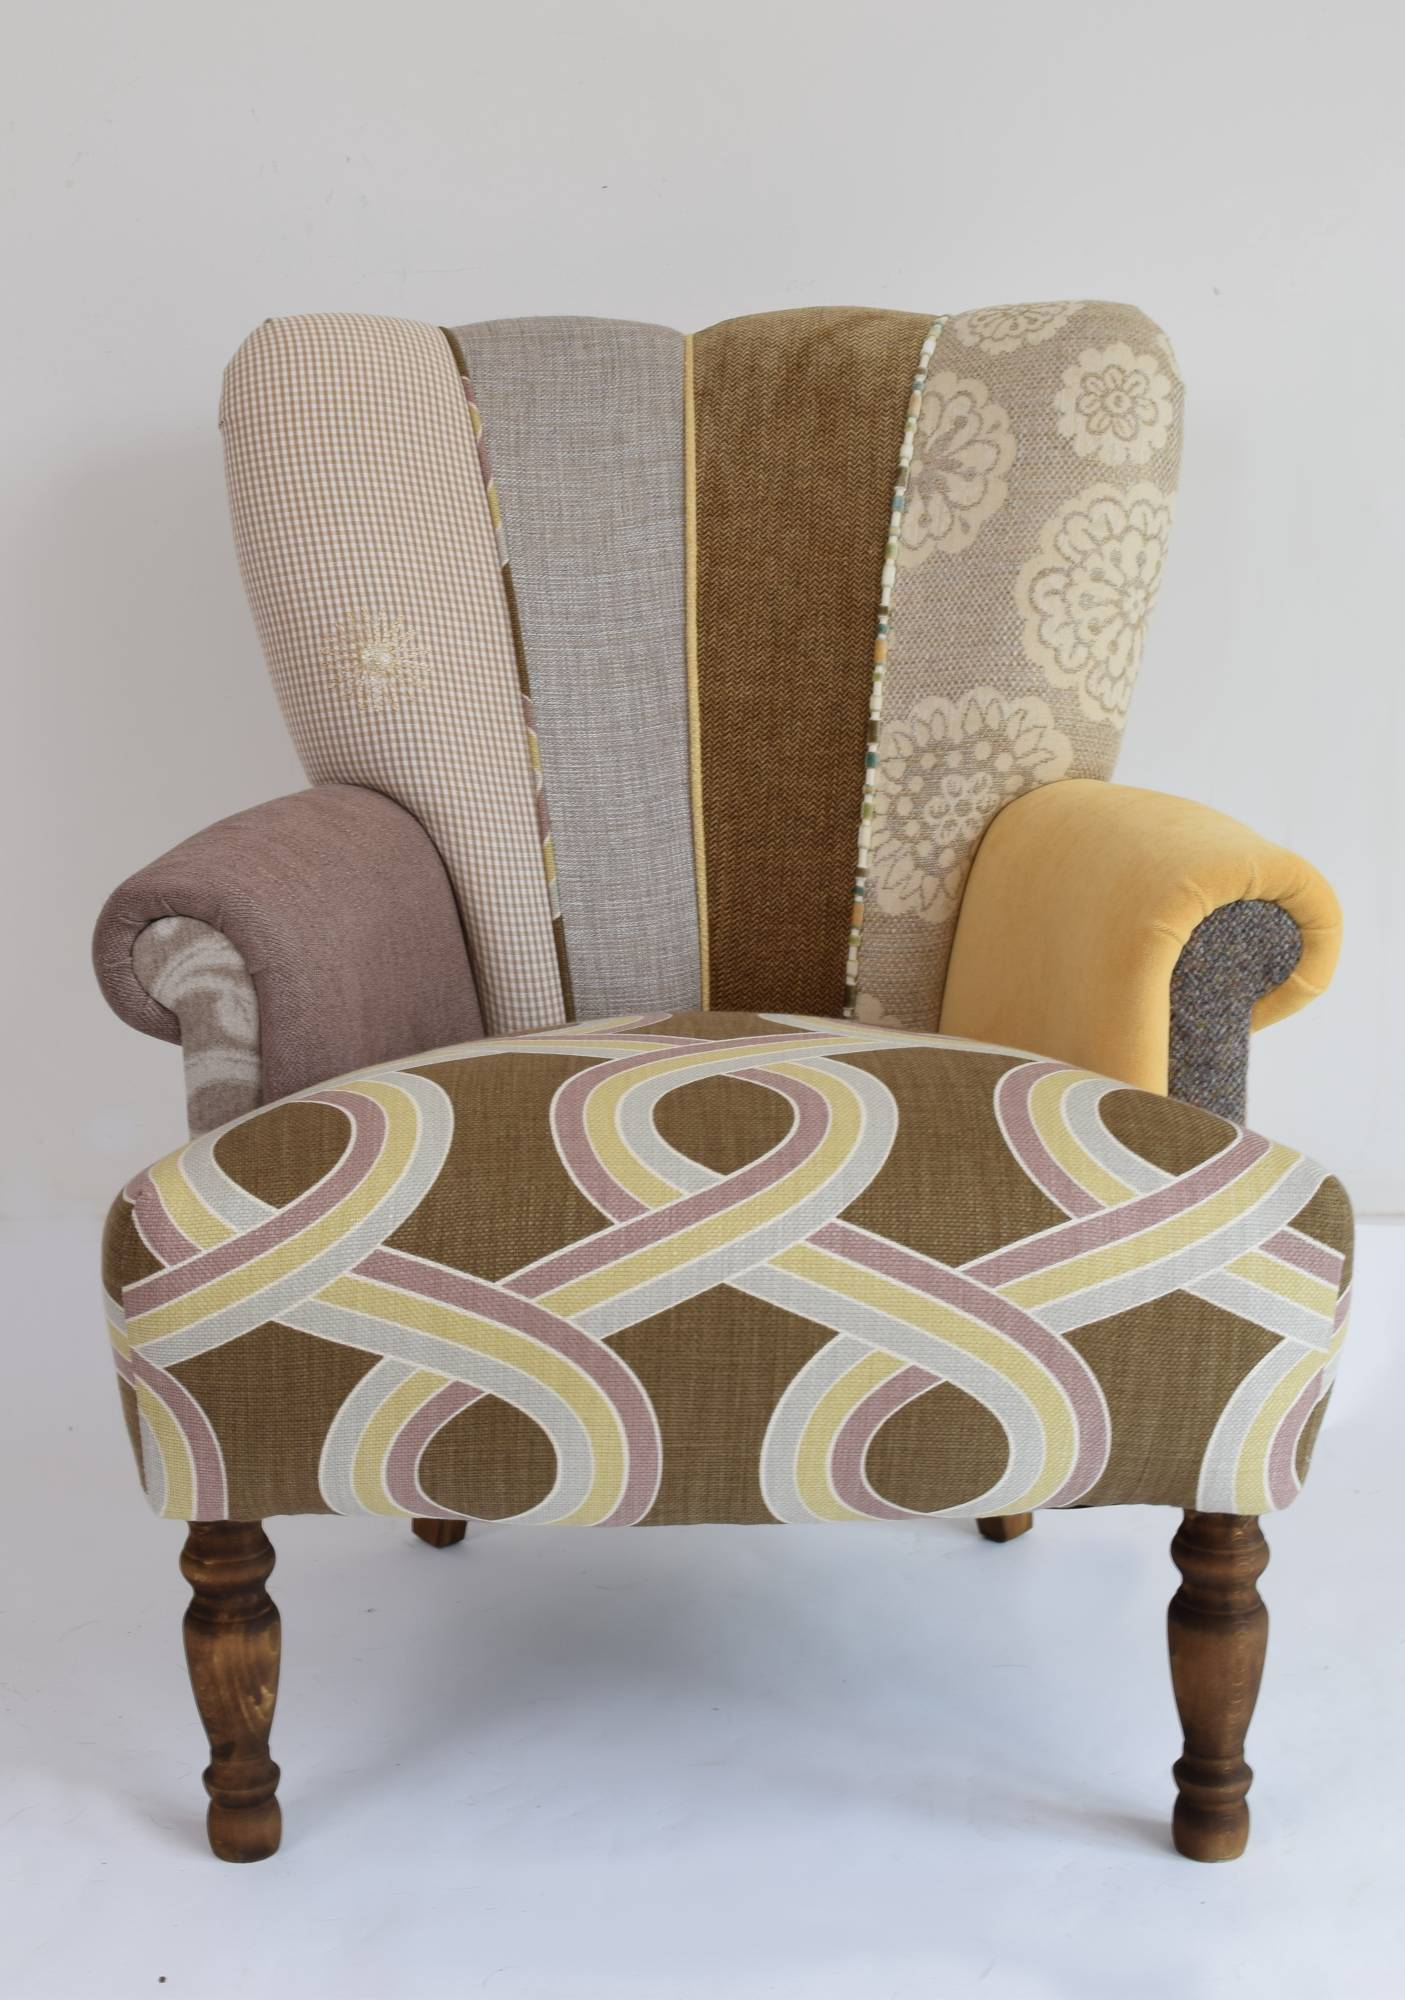 Quirky harlequin chair 137 chairs for Quirky furniture